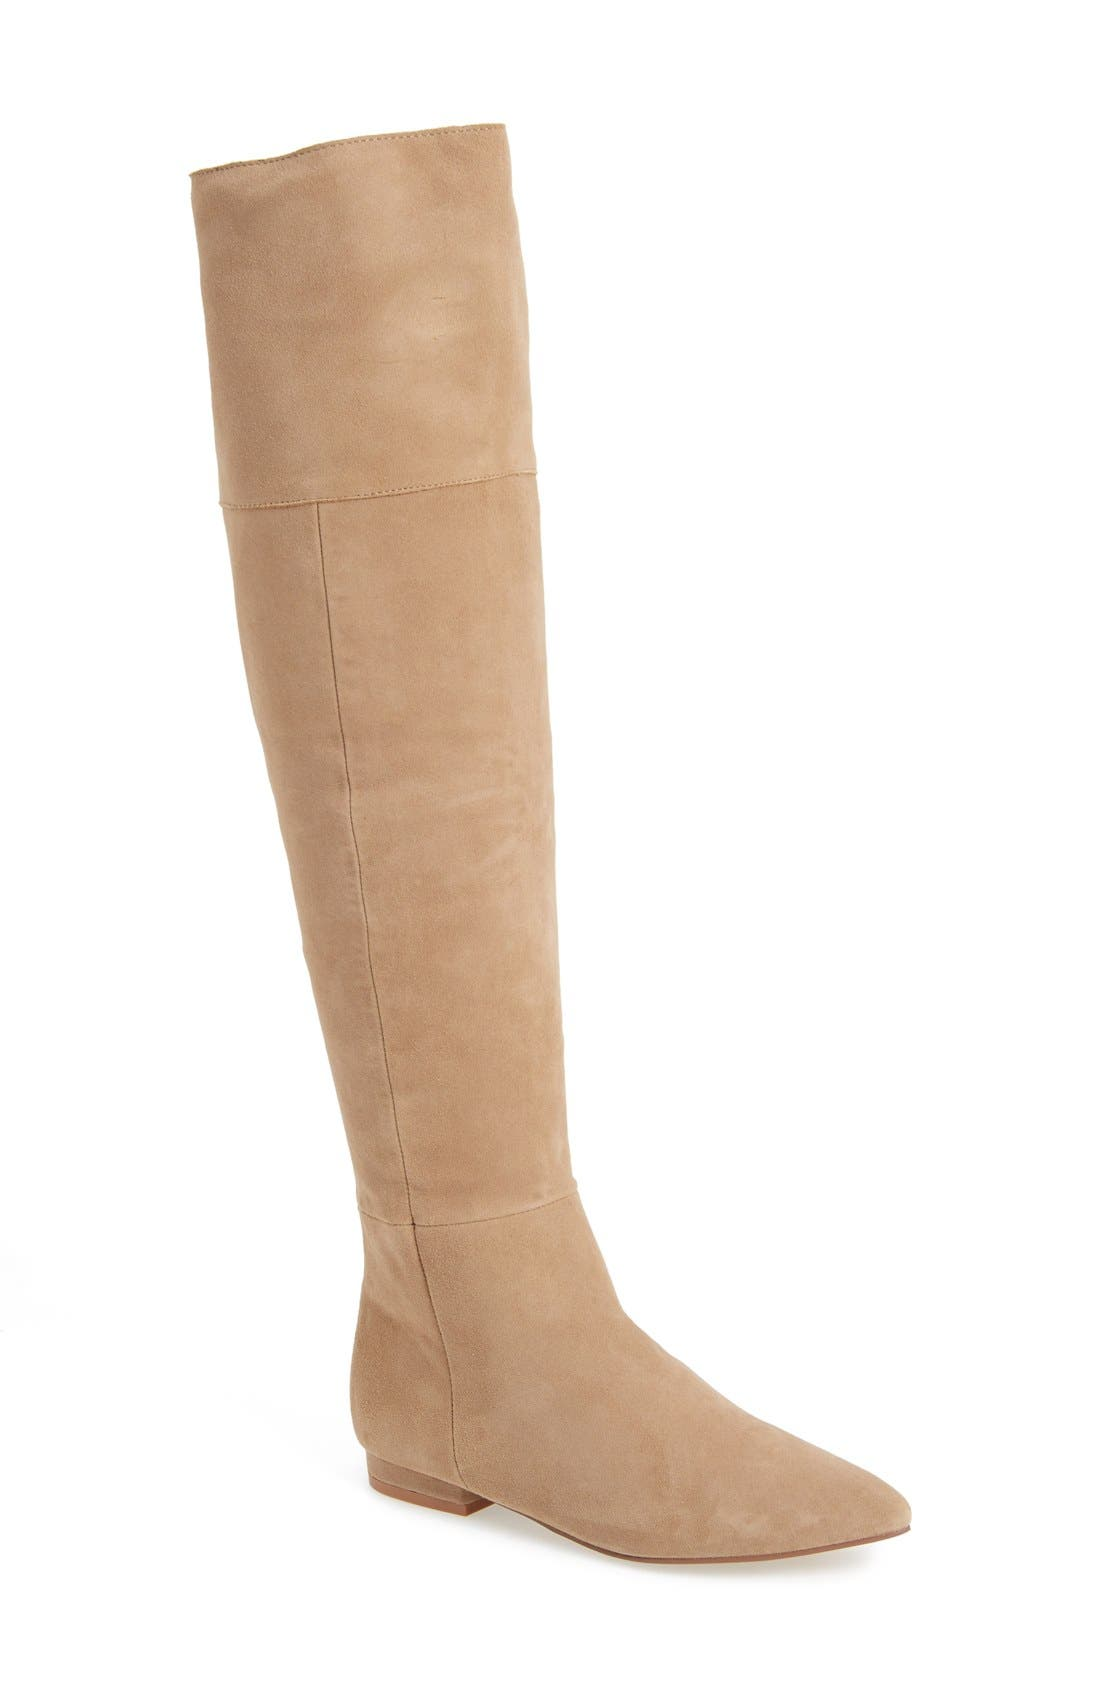 'York' Over the Knee Boot,                         Main,                         color, 250